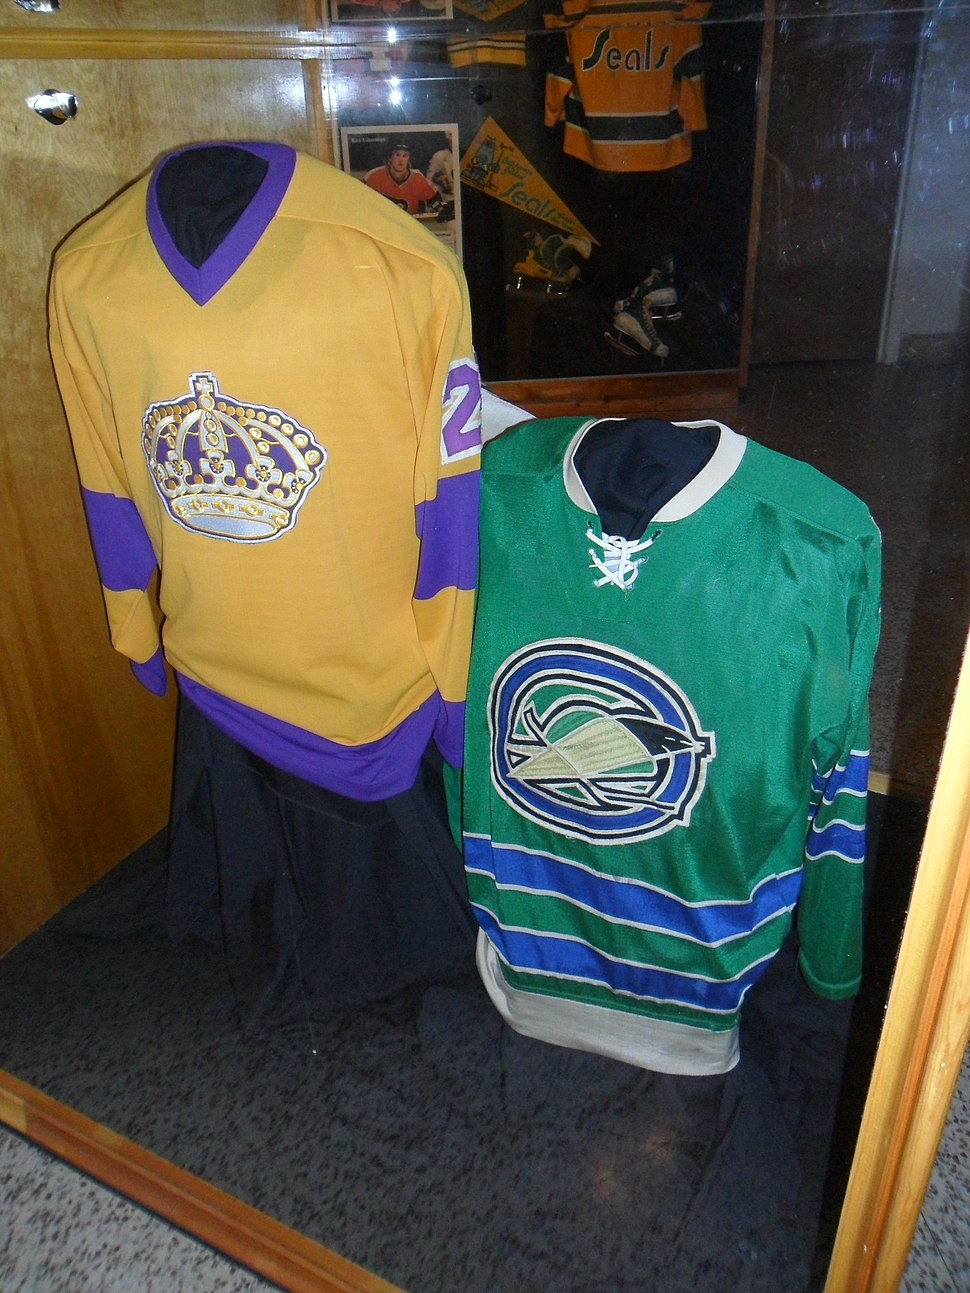 LA Kings jersey and Oakland Seals jersey at IHHOF